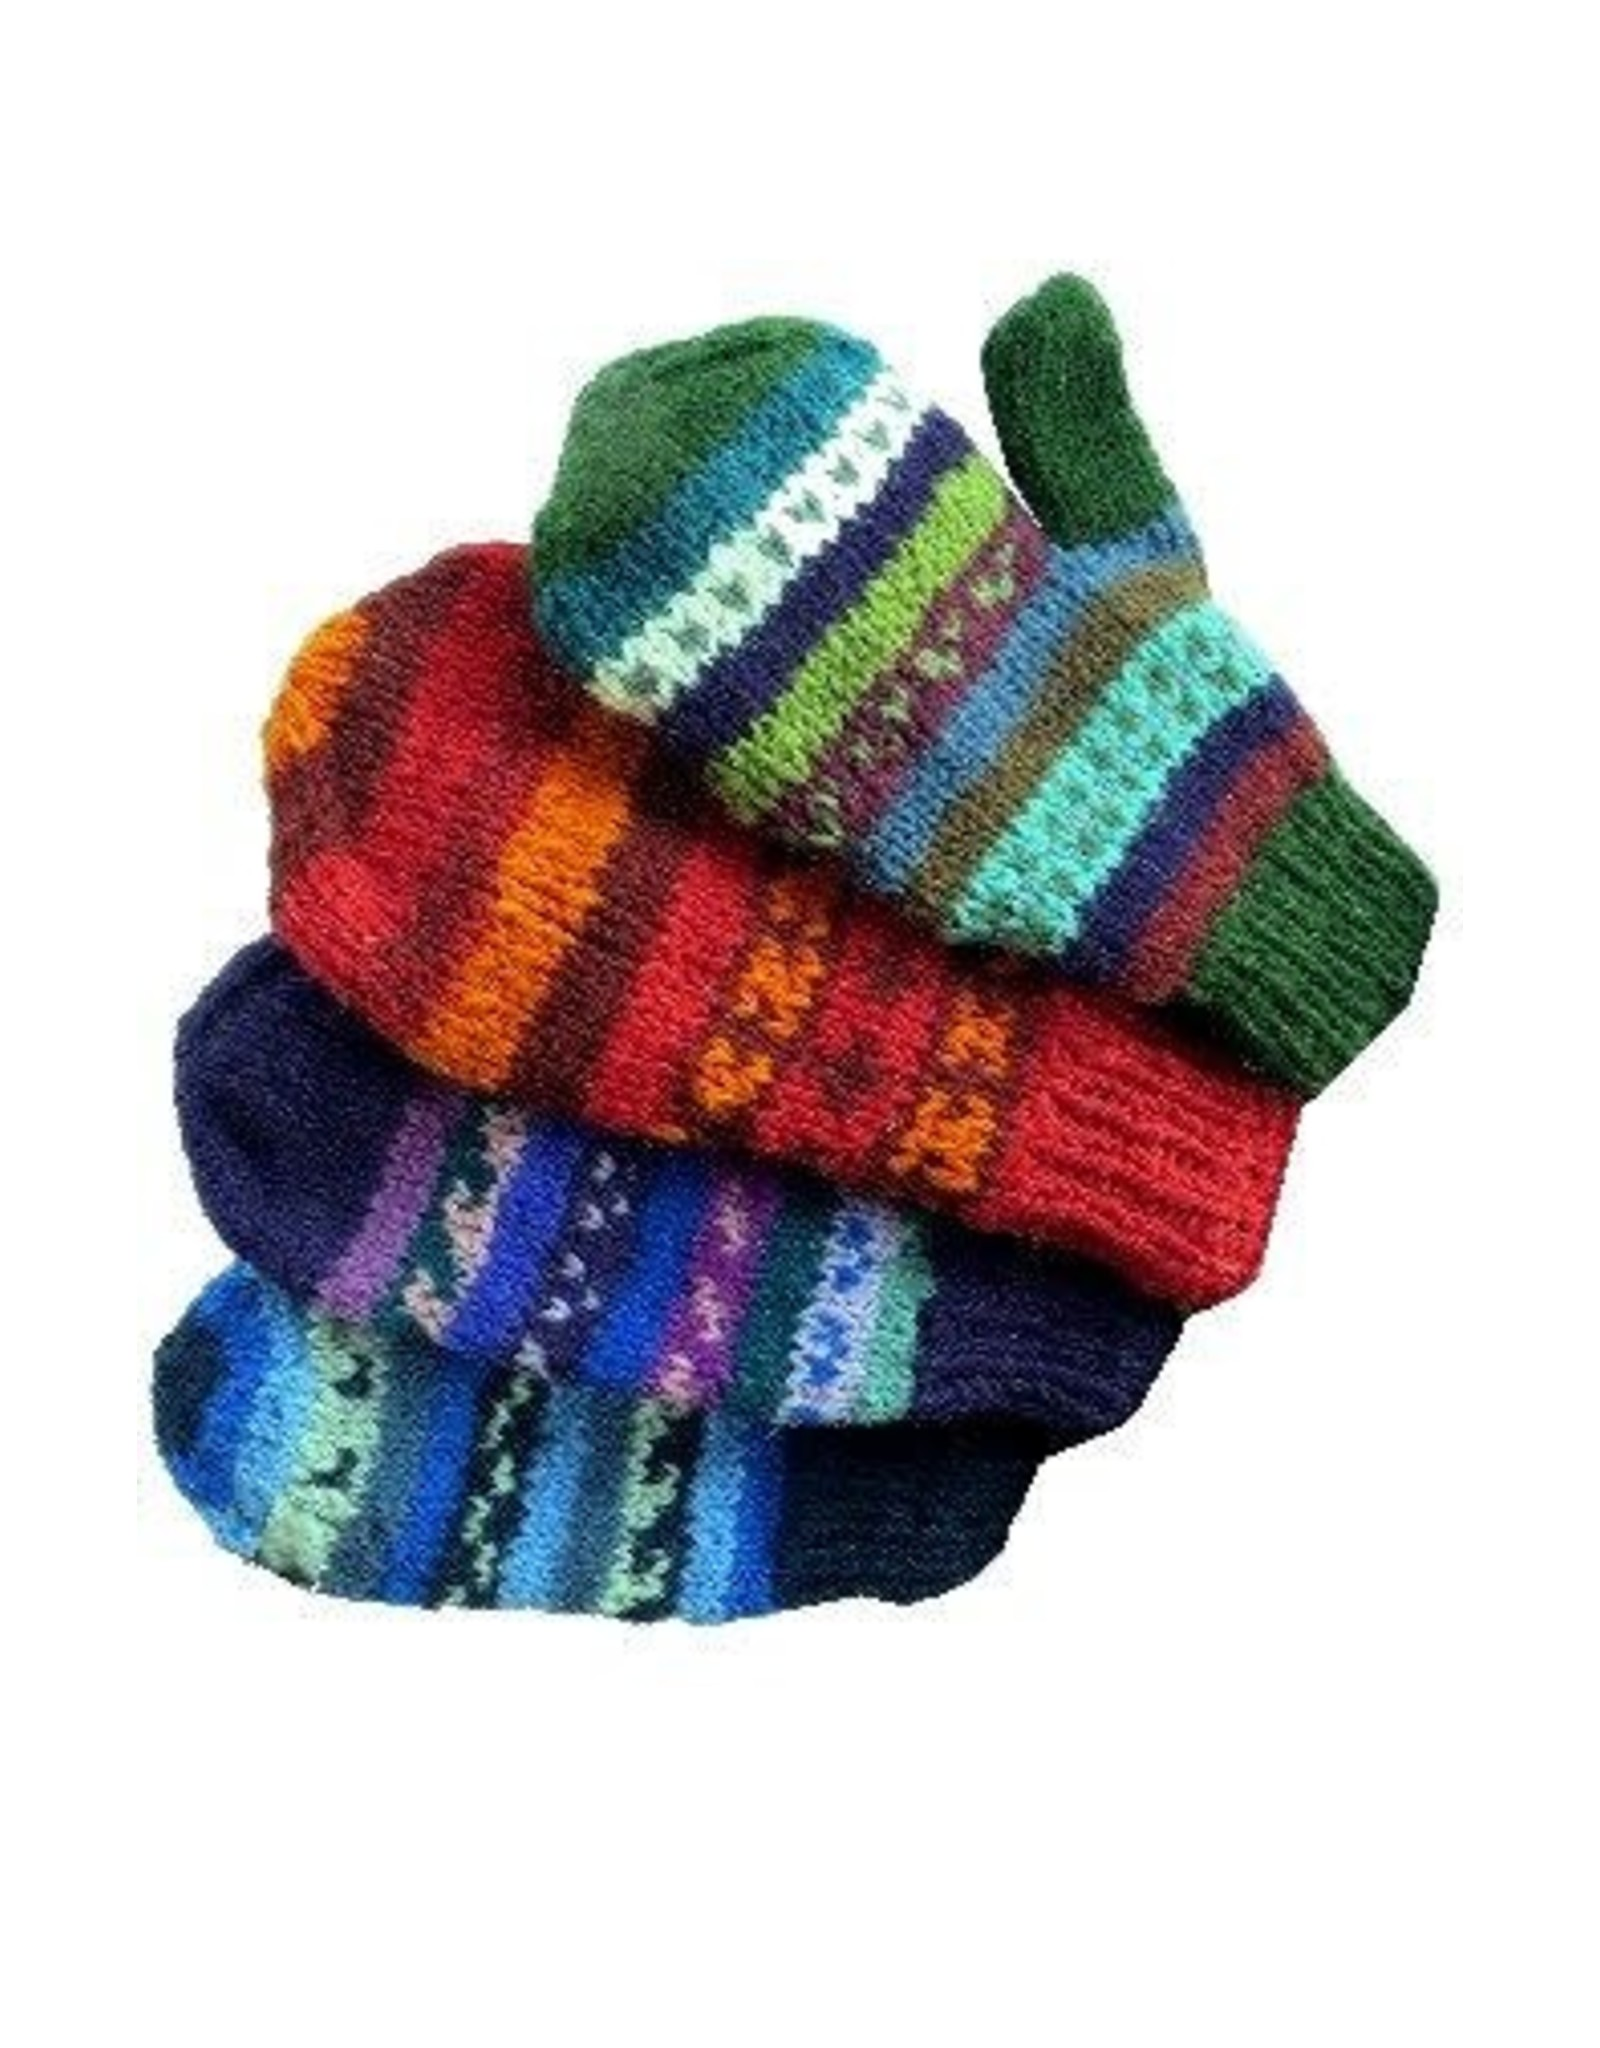 Ganesh Himal Knit Mittens, fleece lined, assorted